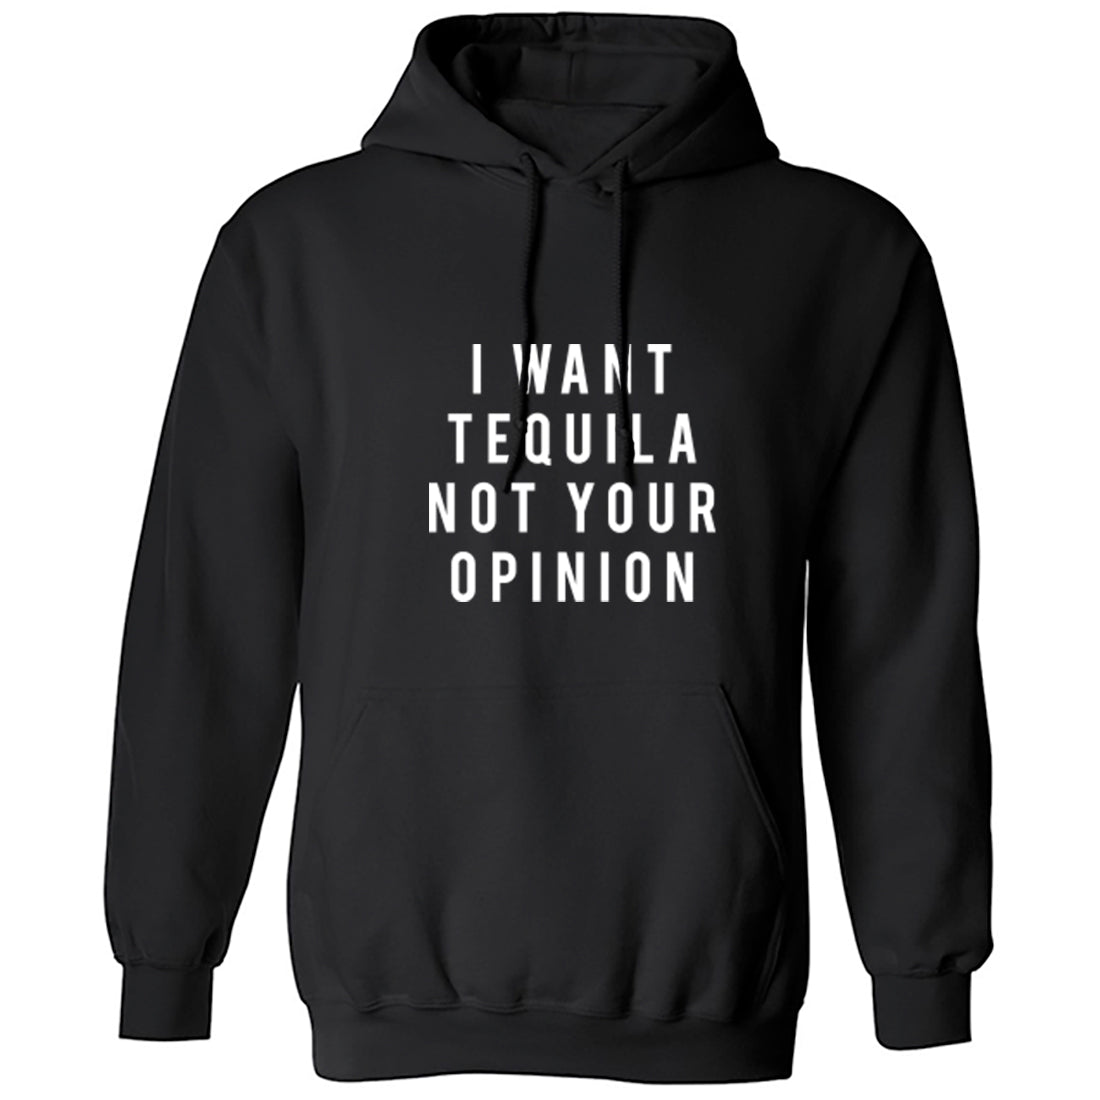 I Want Tequila Not Your Opinion Unisex Hoodie K2183 - Illustrated Identity Ltd.